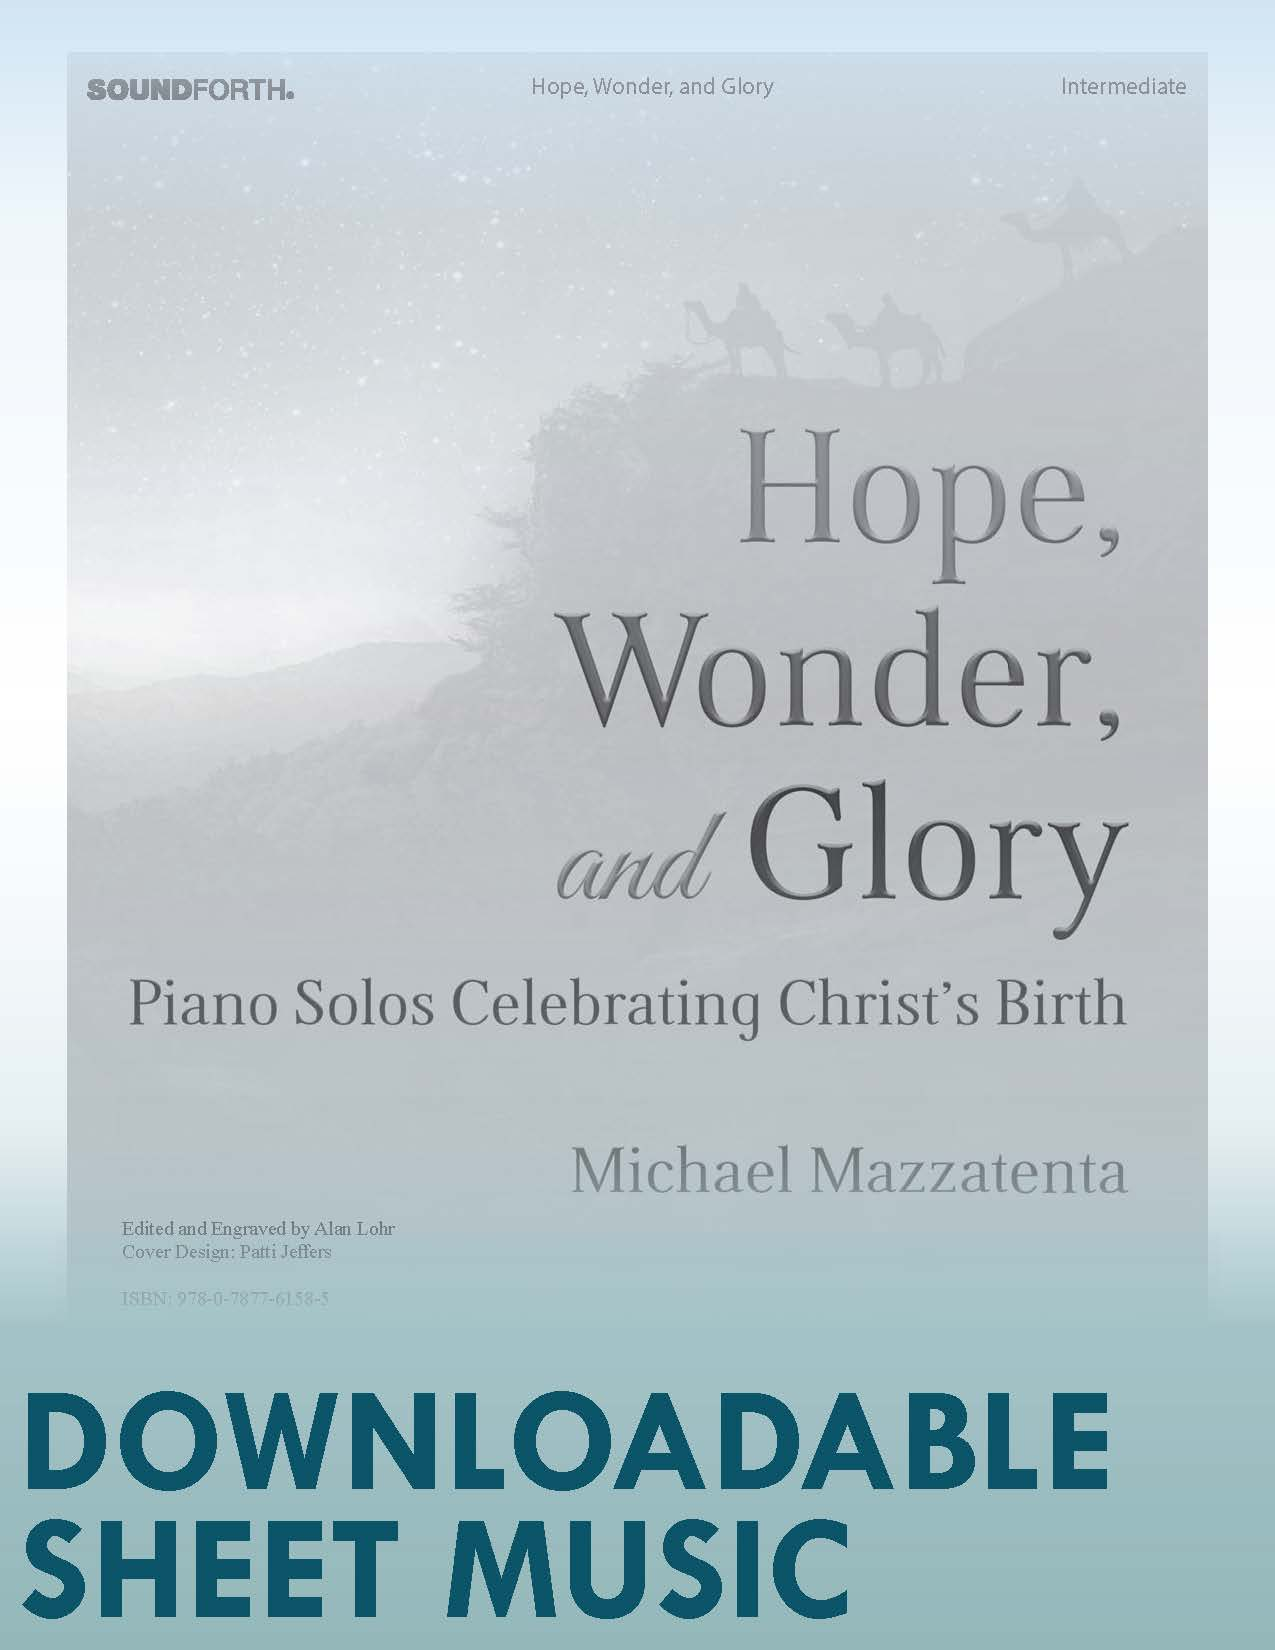 Hope, Wonder, and Glory - Digital Download